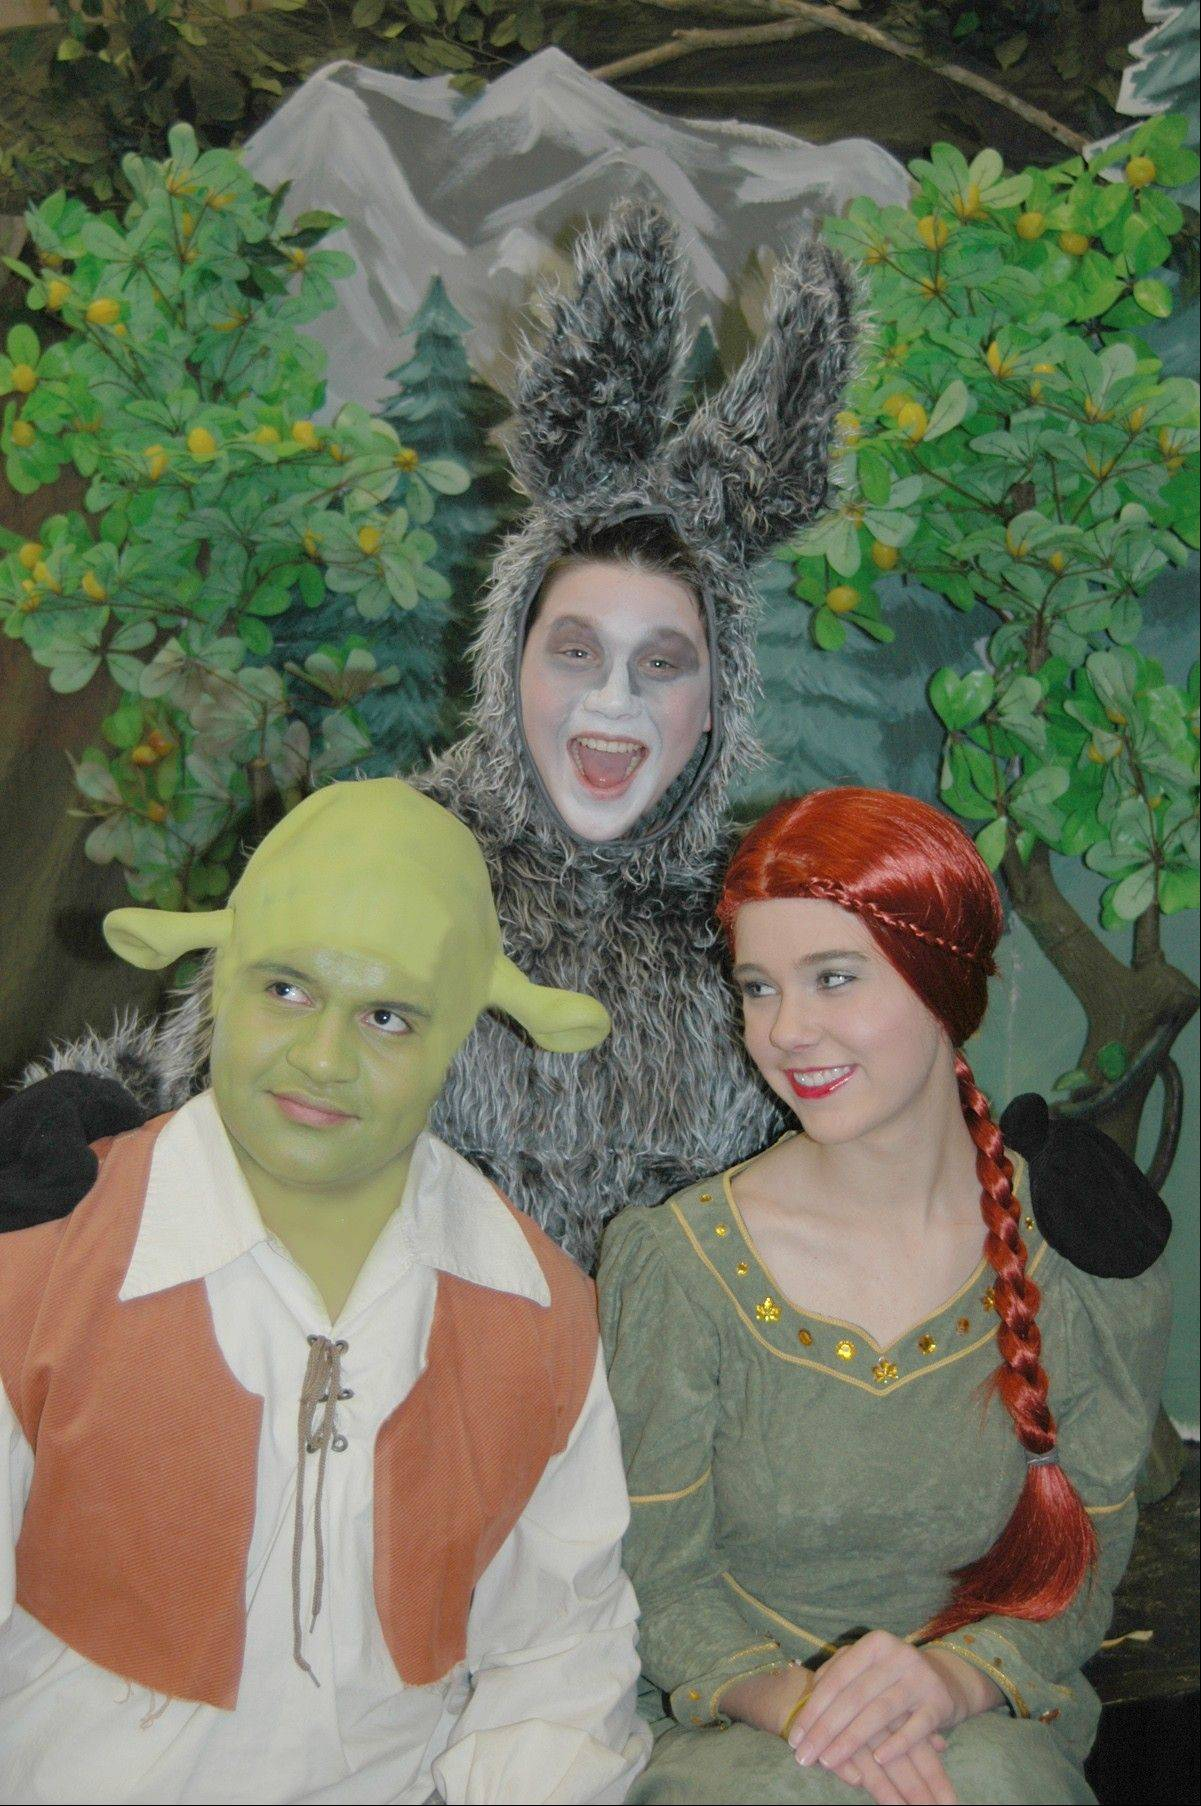 From left, Fabian Guerrero as Shrek, Elisabeth Coster as Princess Fiona and Jake Ziman as Donkey perform the leading roles in �Shrek the Musical,� which hits the stage at the Prisco Community Center in Aurora this weekend for four shows.